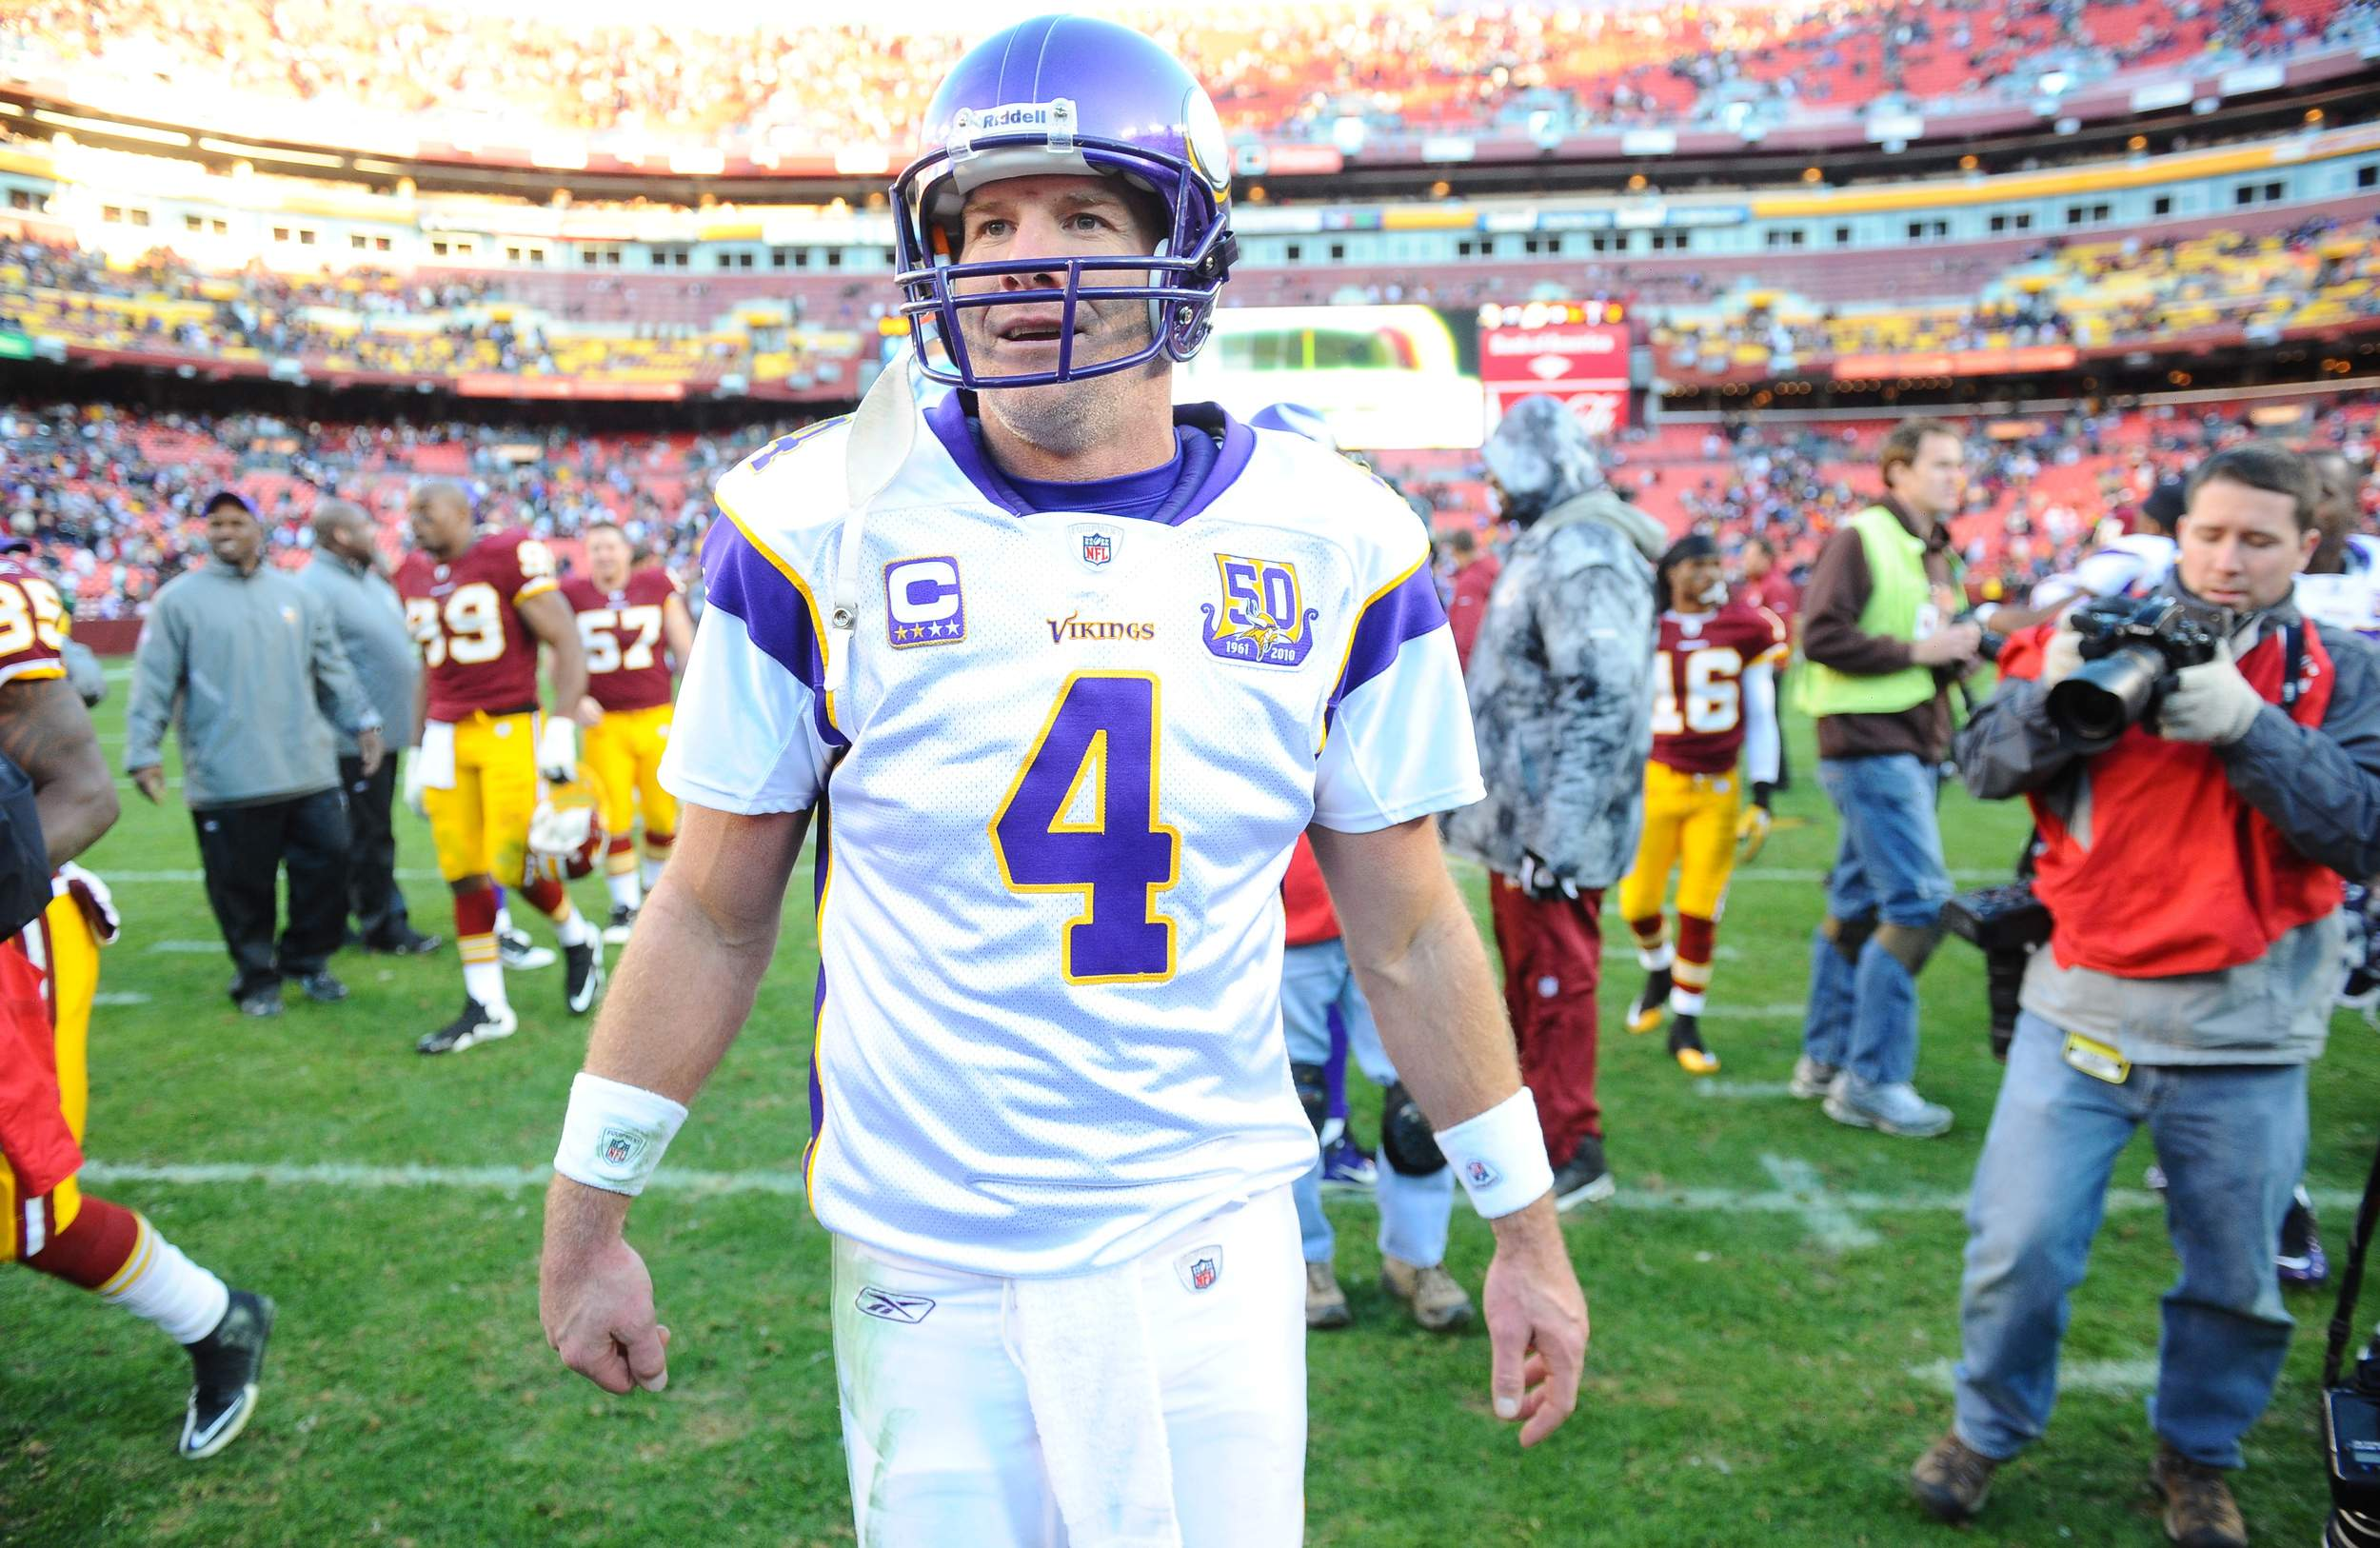 brett favre cringes when he sees youth football  quarterback brett favre leaves the field following a 2010 win over the washington redskins he now worries about concussions traumatic brain injuries